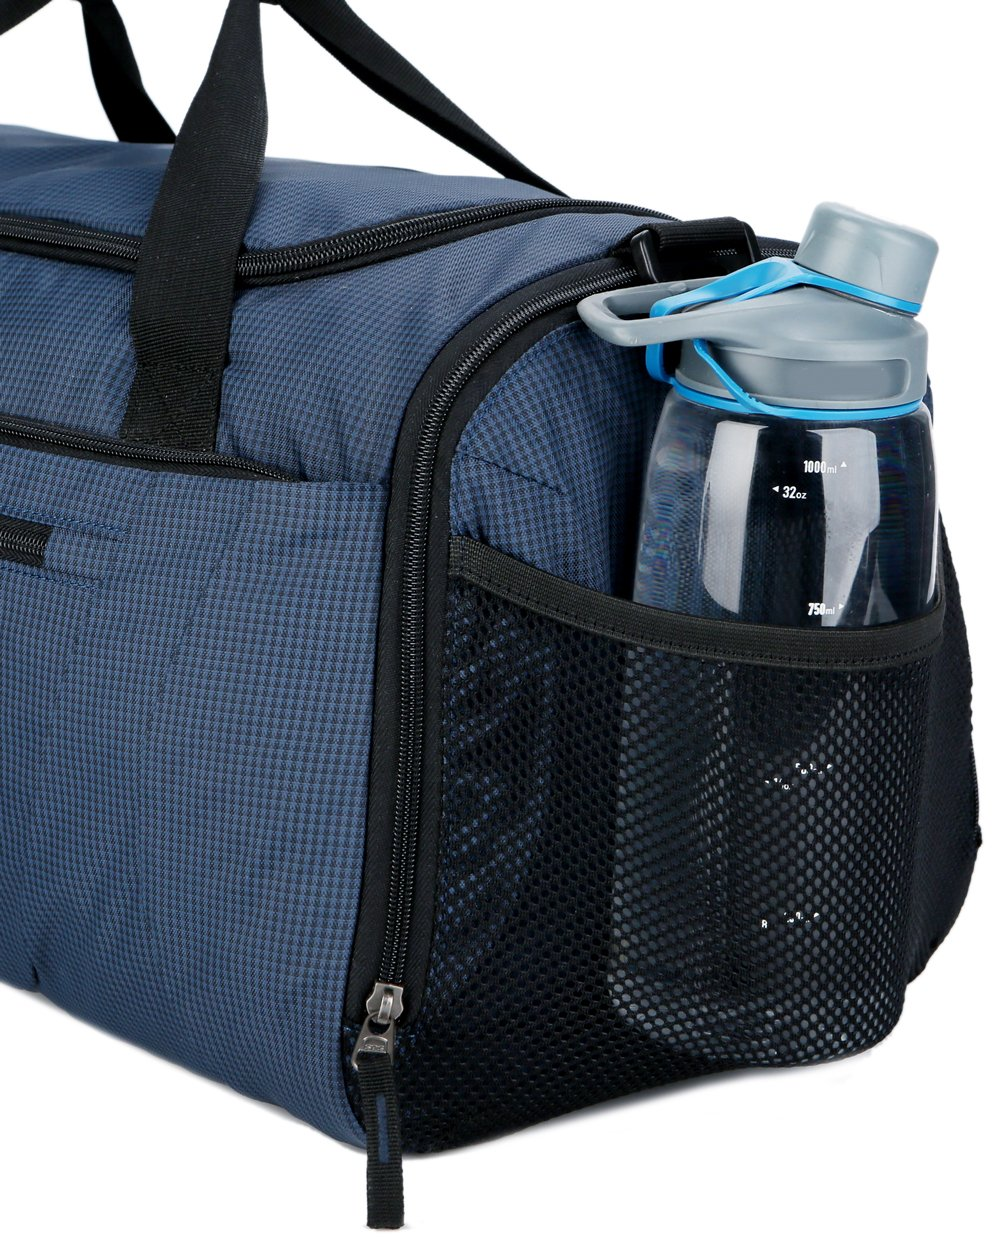 4c690b44c9b Mouteenoo Gym Bag 40L Sports Travel Duffel Bag for Men and Women with Shoes  Compartment Blue larger image